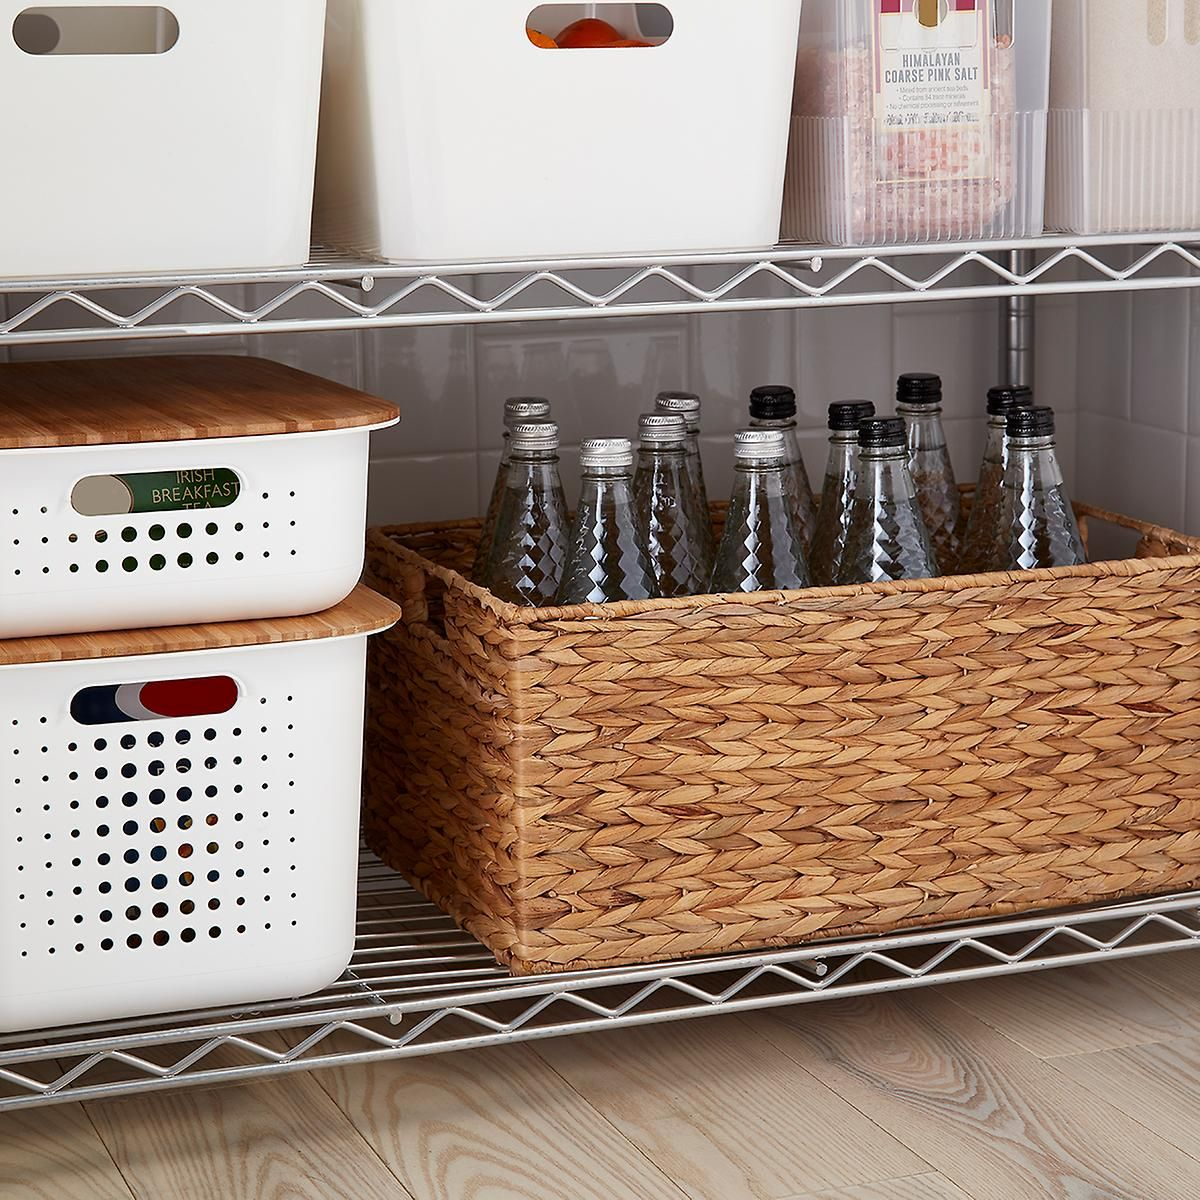 White Nordic Storage Baskets With Handles Storage Baskets With Lids Storage Baskets Storage Bins